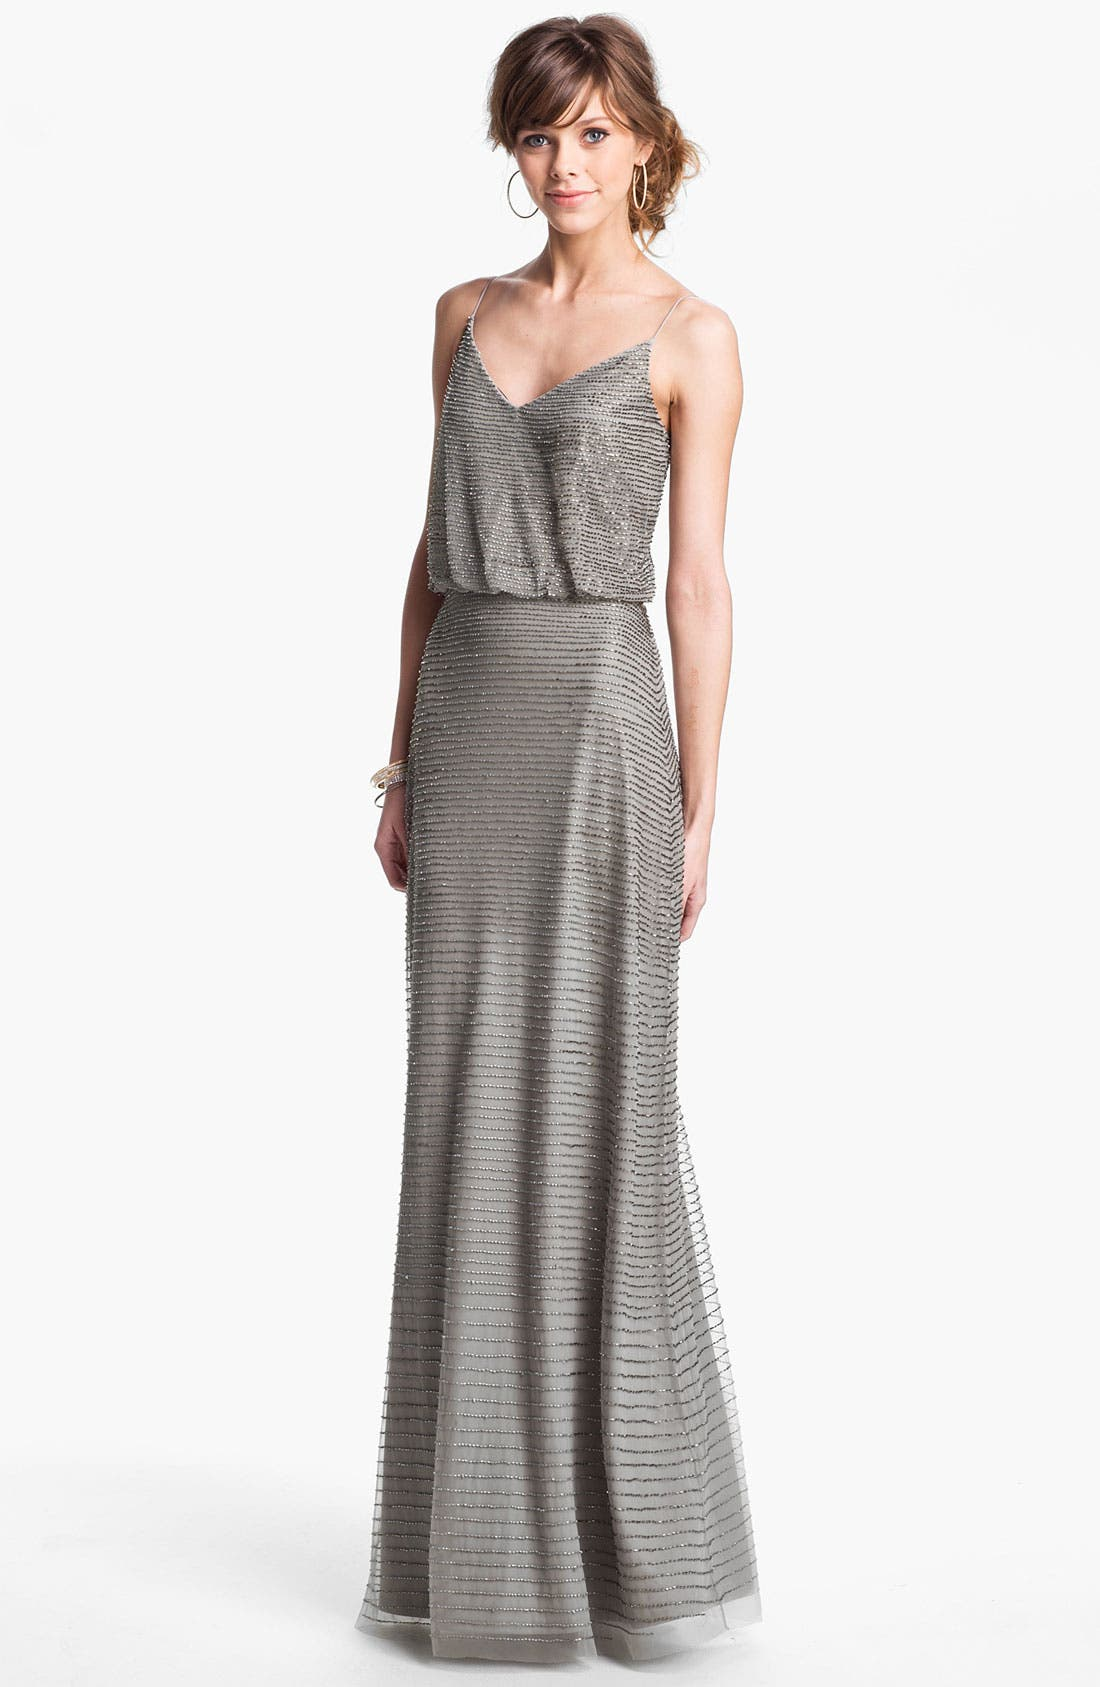 Alternate Image 1 Selected - Adrianna Papell Embellished Blouson Mesh Gown